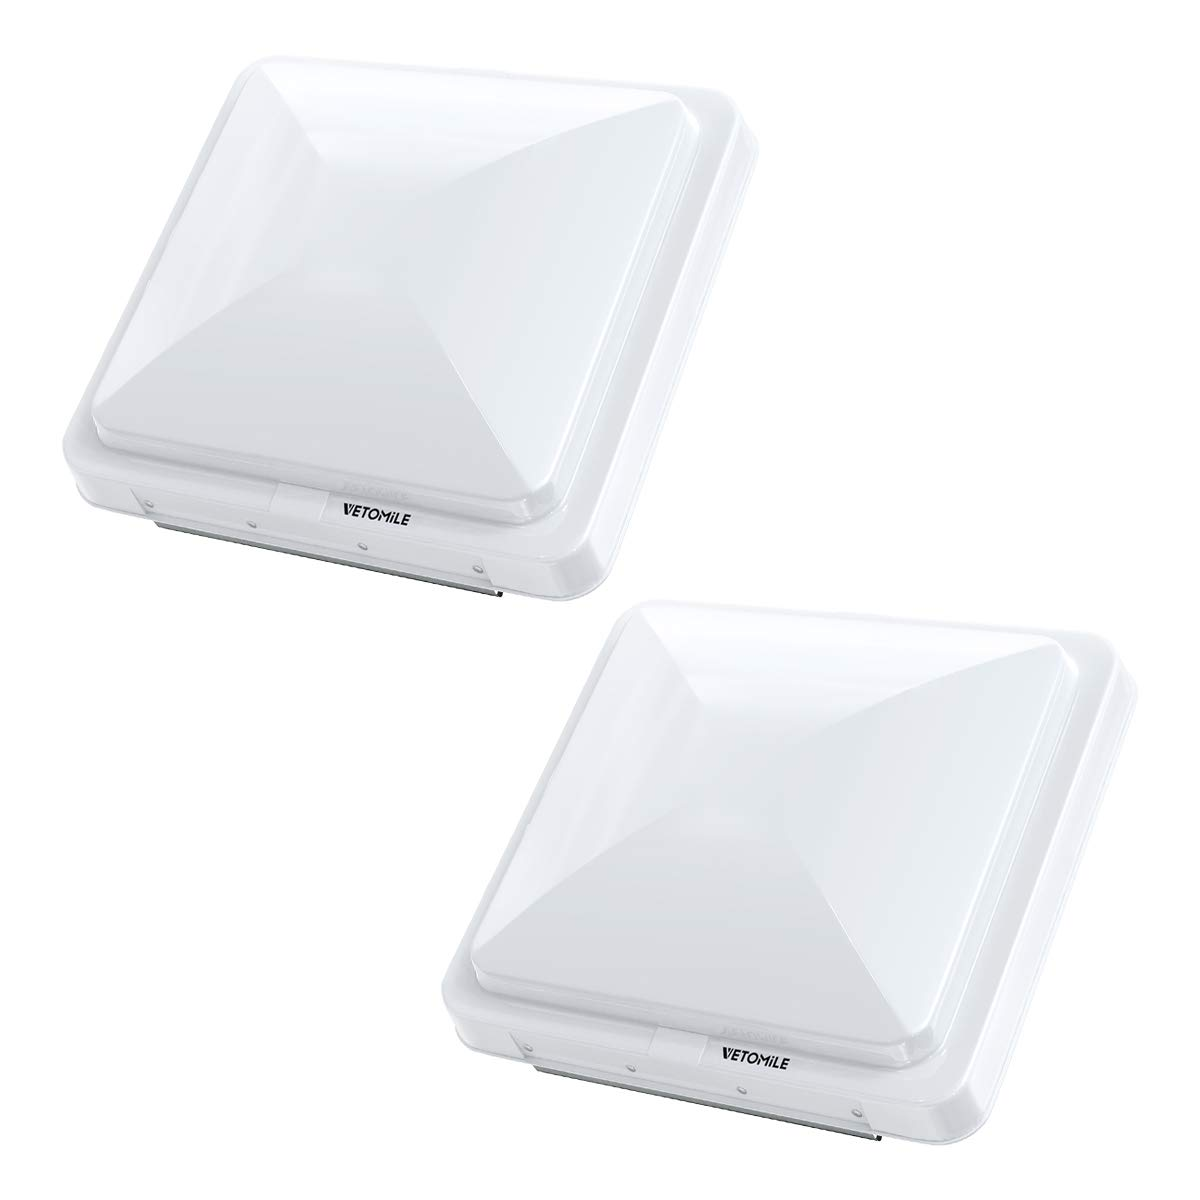 VETOMILE RV Roof Vent Lid Cover 14 inch Universal White Cover Lid for Motorhome Trailer RV Camper 2 Pack